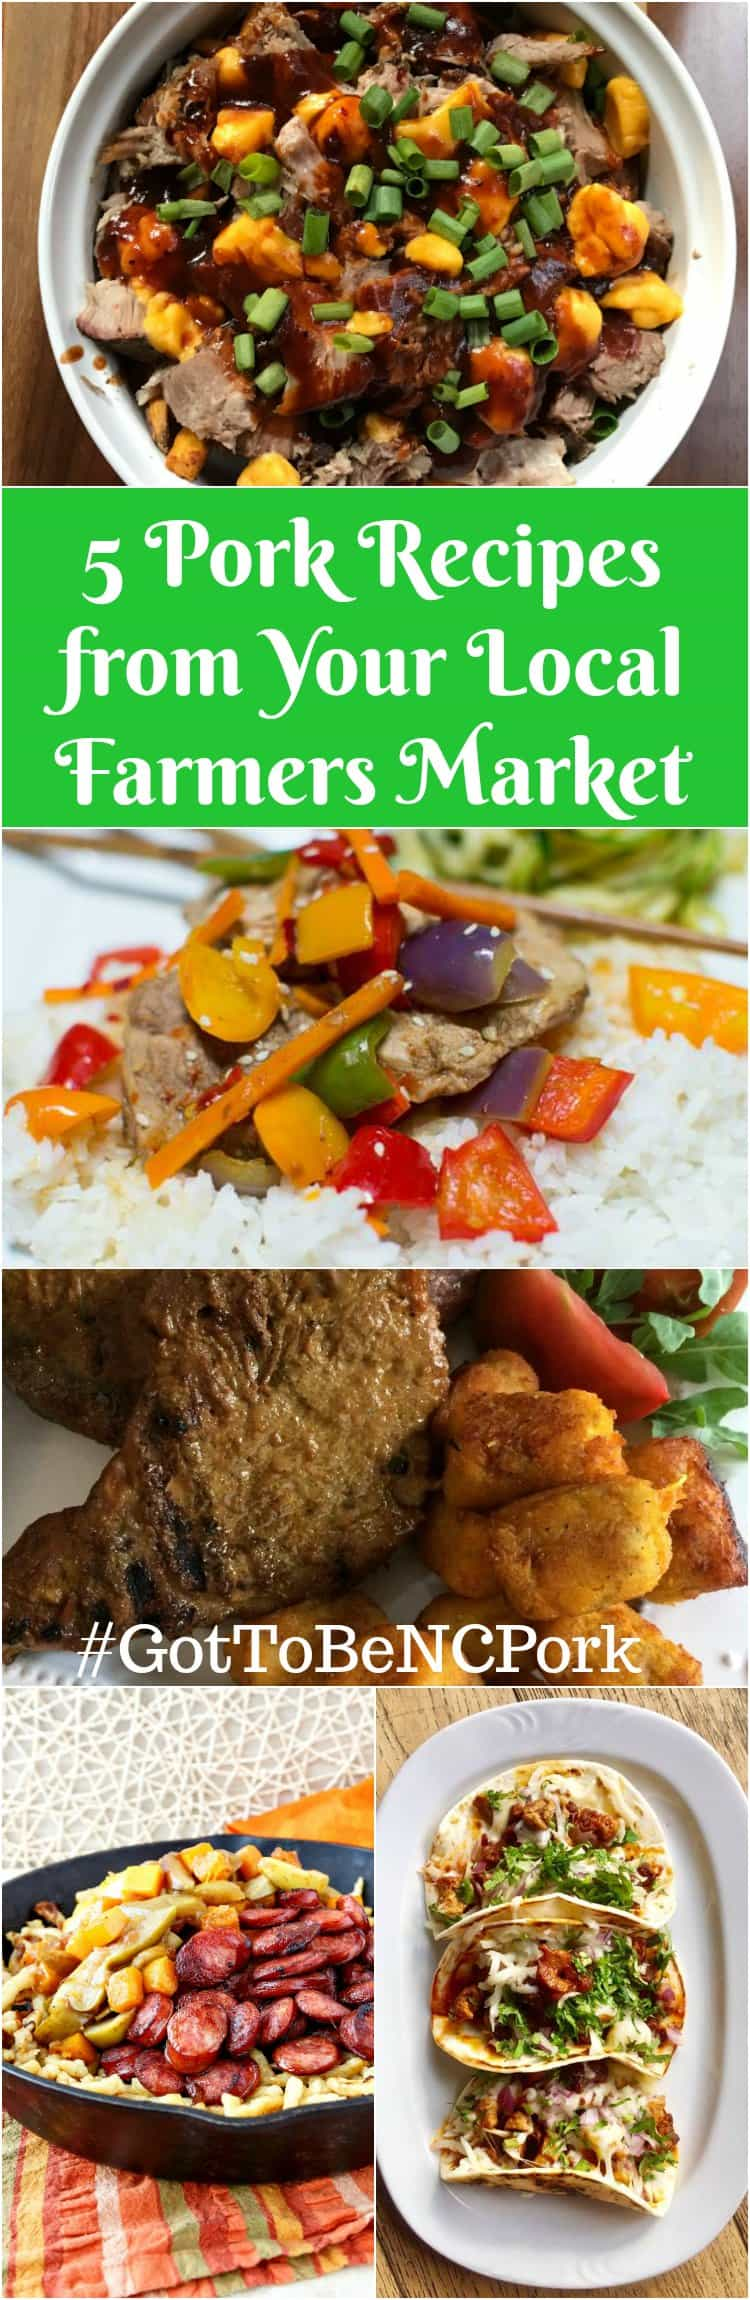 """Collage of 5 recipes with text saying: """"5 pork recipes from your local farmers market"""" Also """"#GotToBeNCPork""""."""